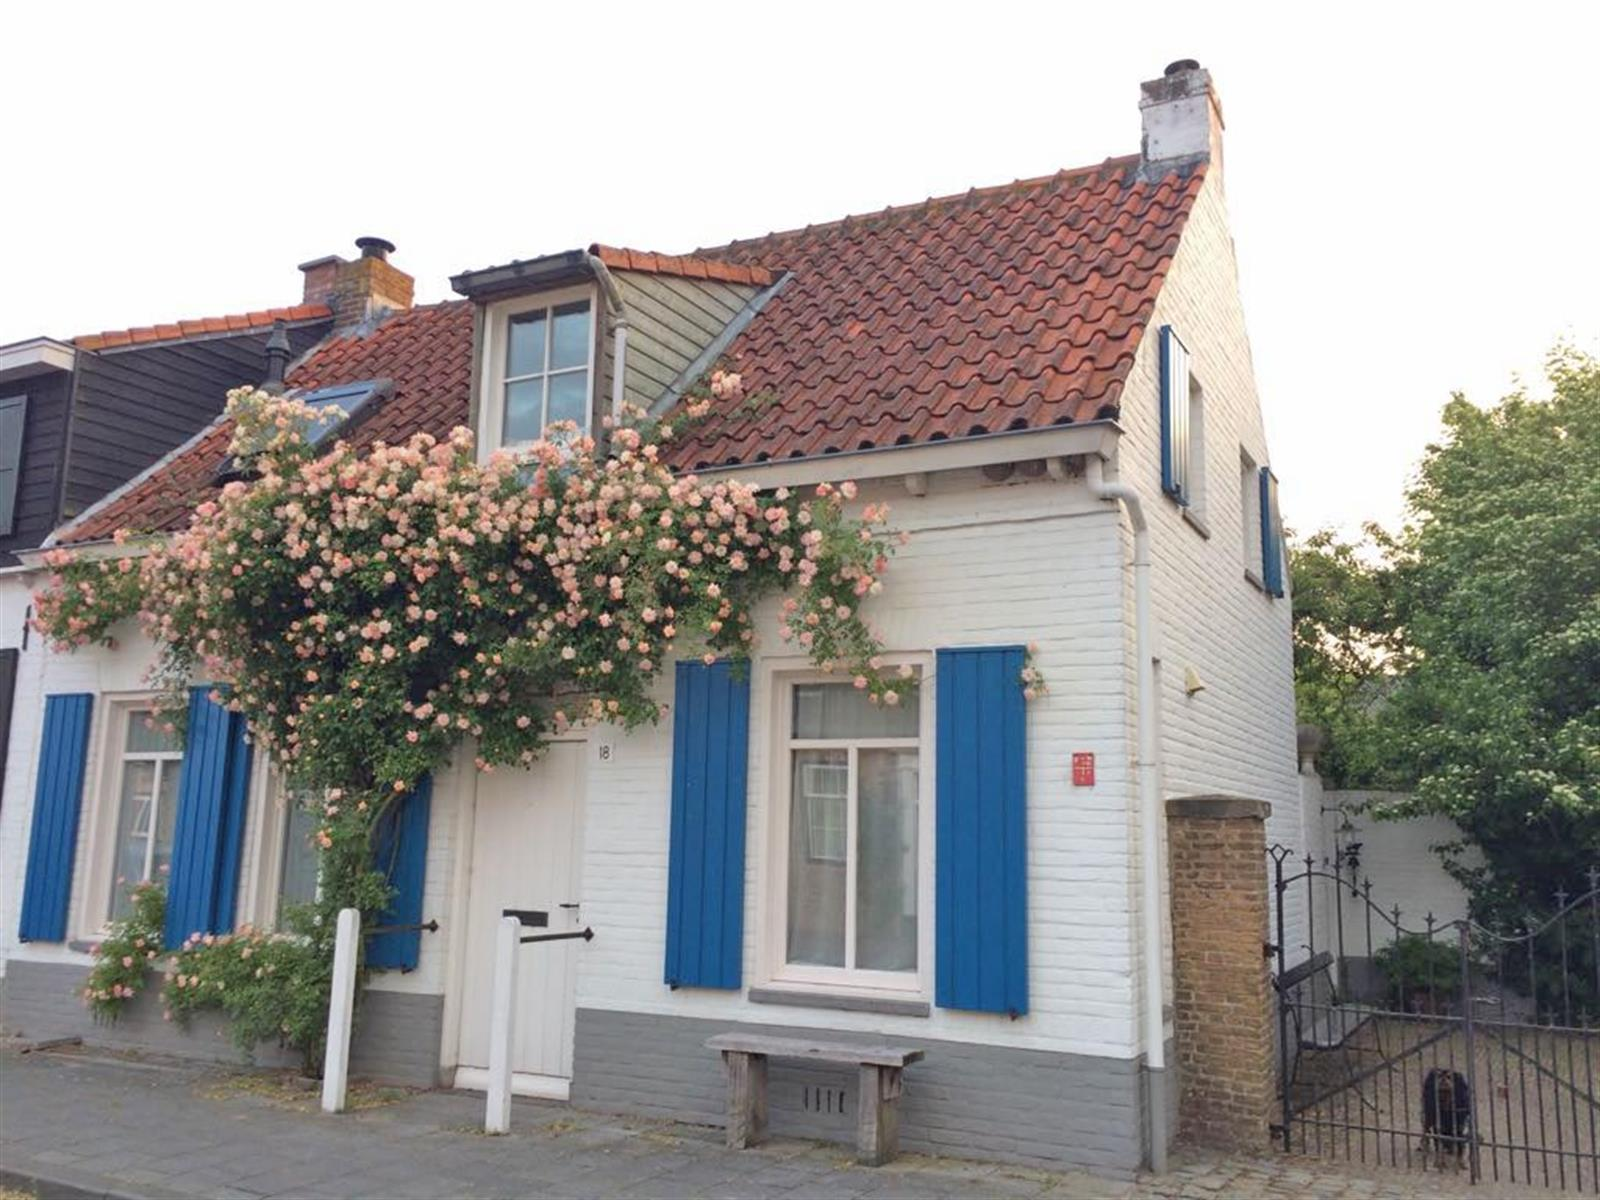 Huis, 4525 Retranchement